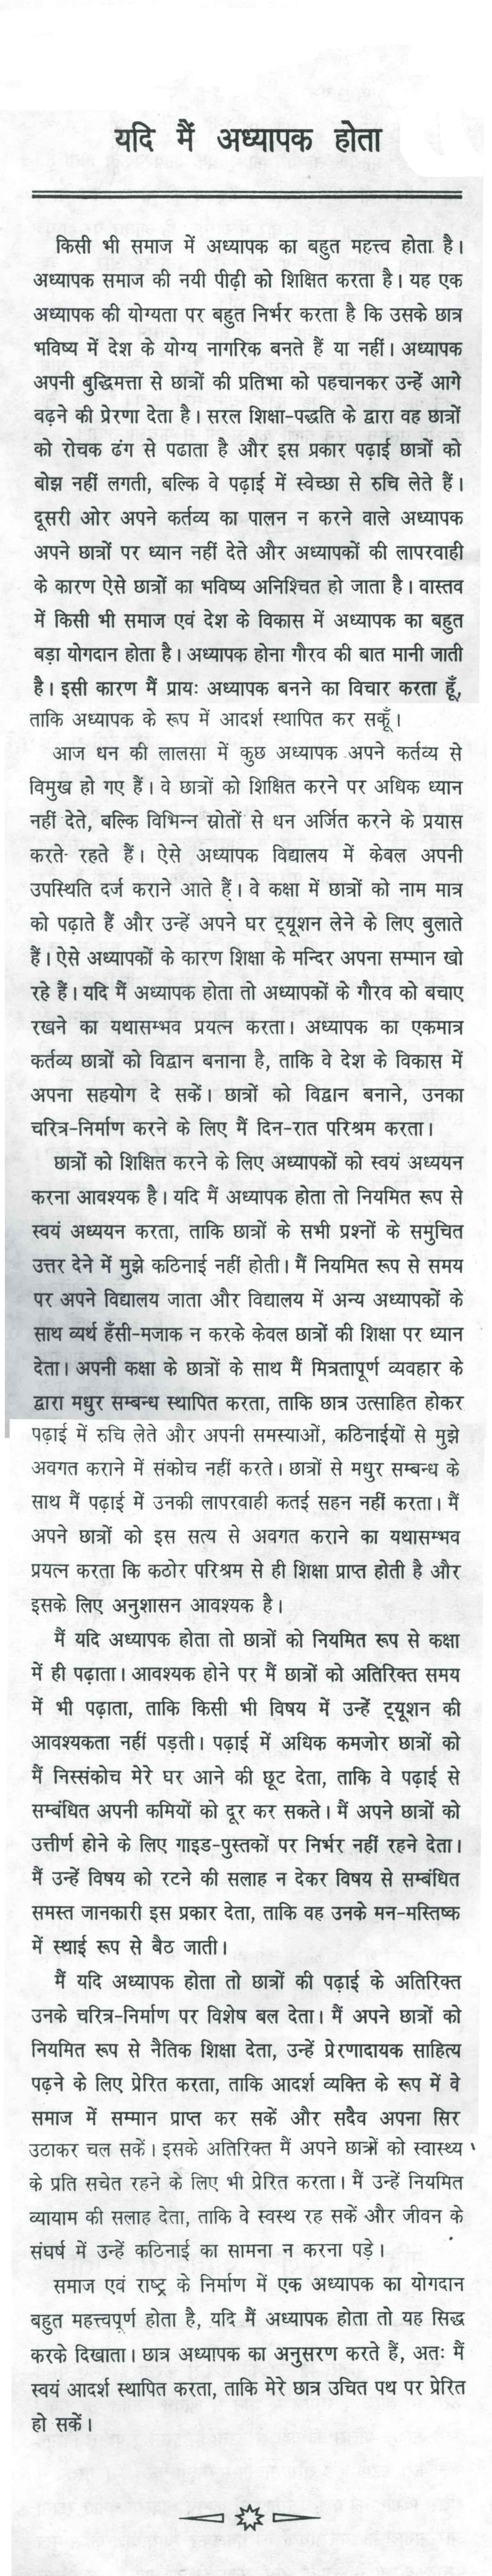 015 Why I Want To Teacher Essay Example 10037 Thumb Amazing Be A Free Sample In Hindi 1920